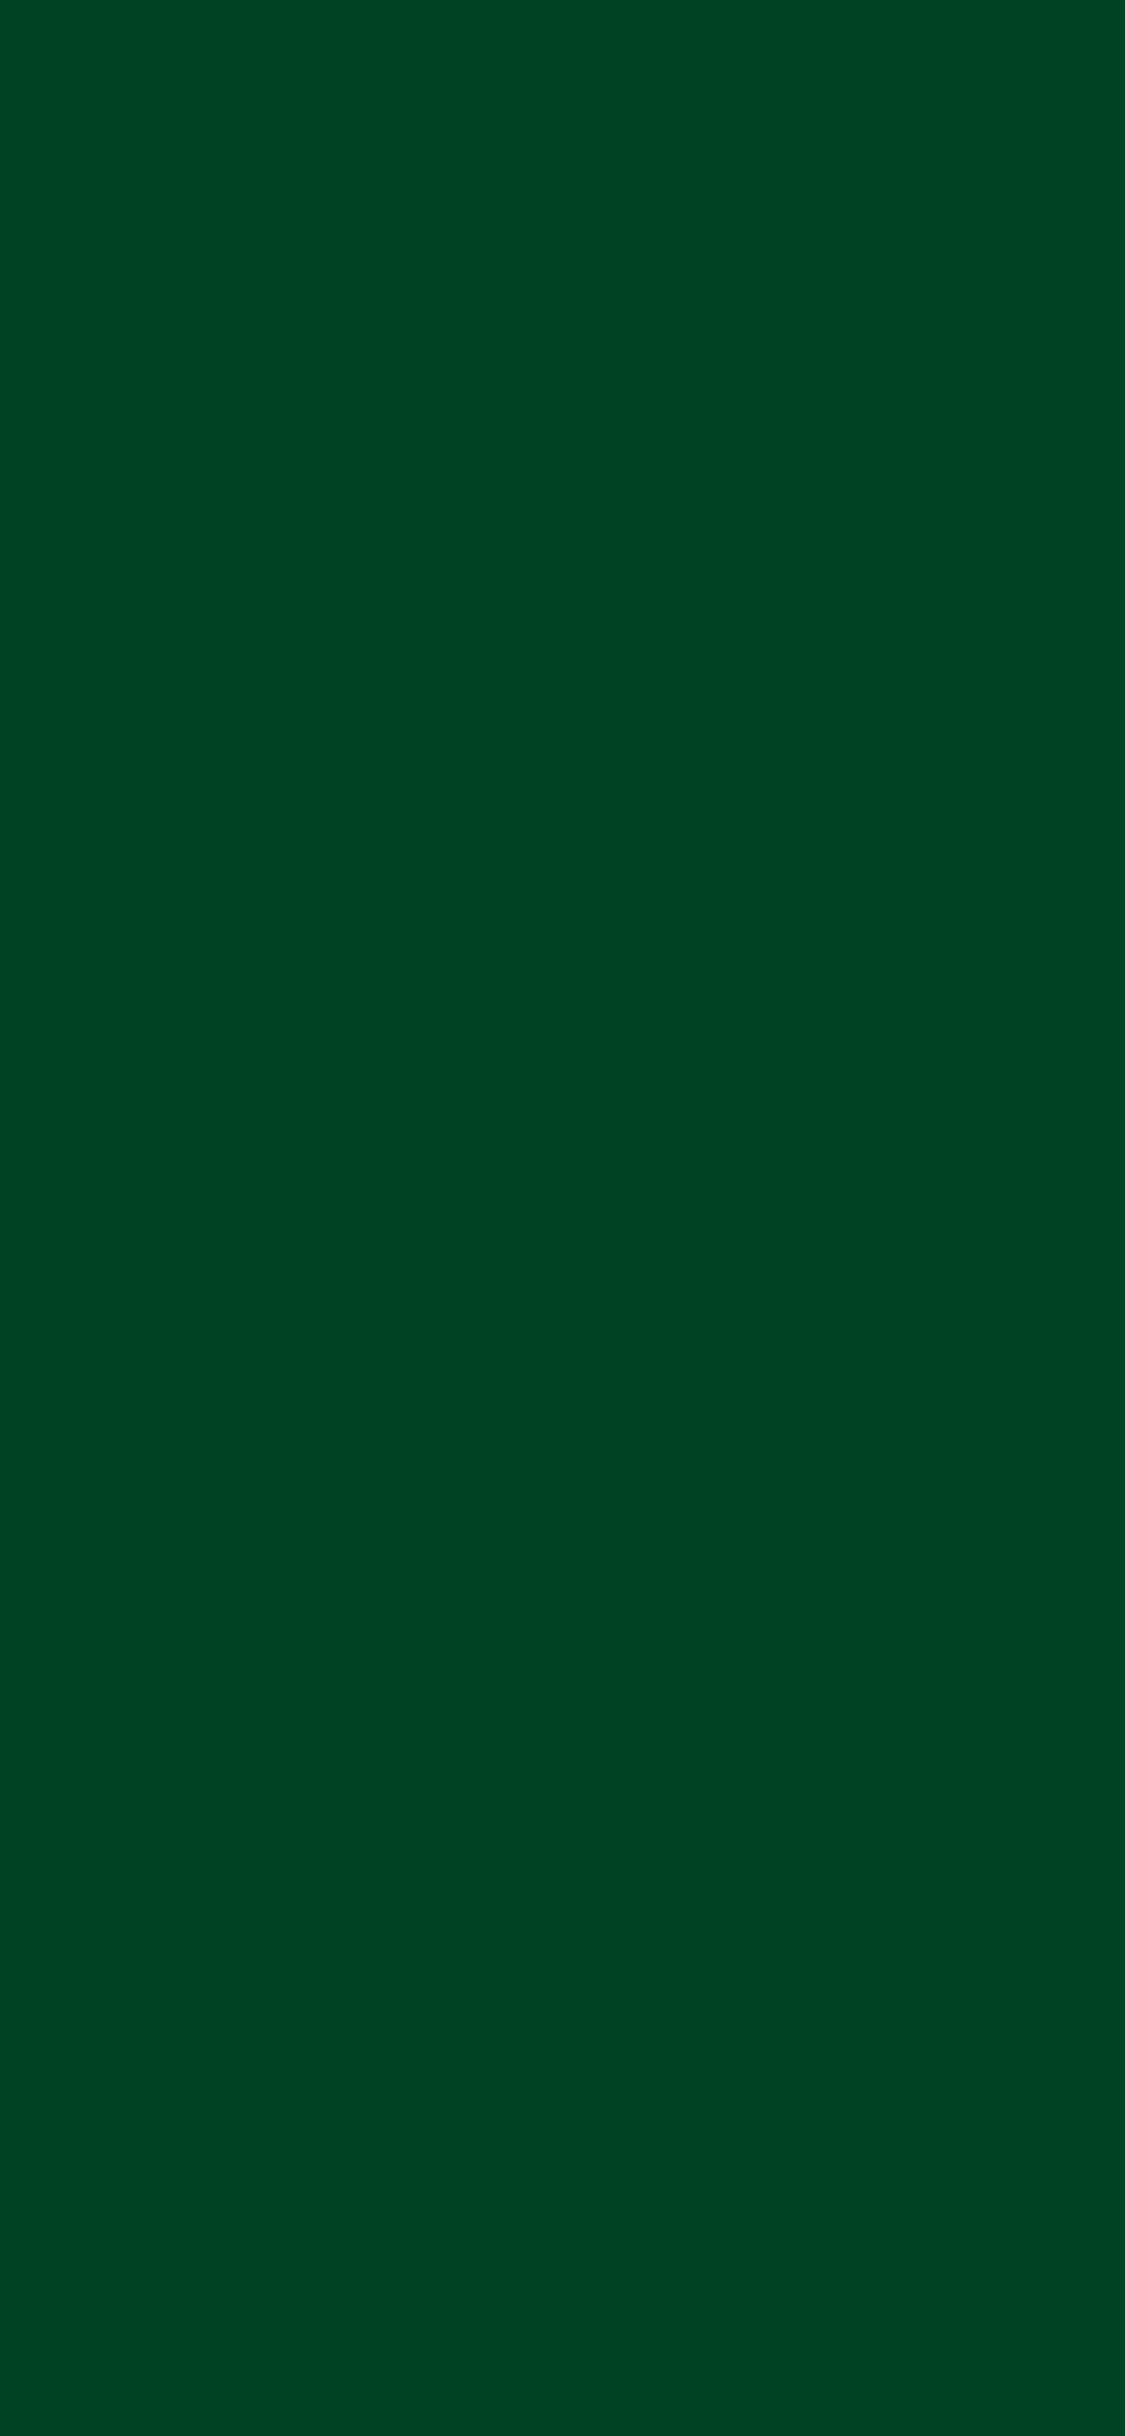 1125x2436 British Racing Green Solid Color Background